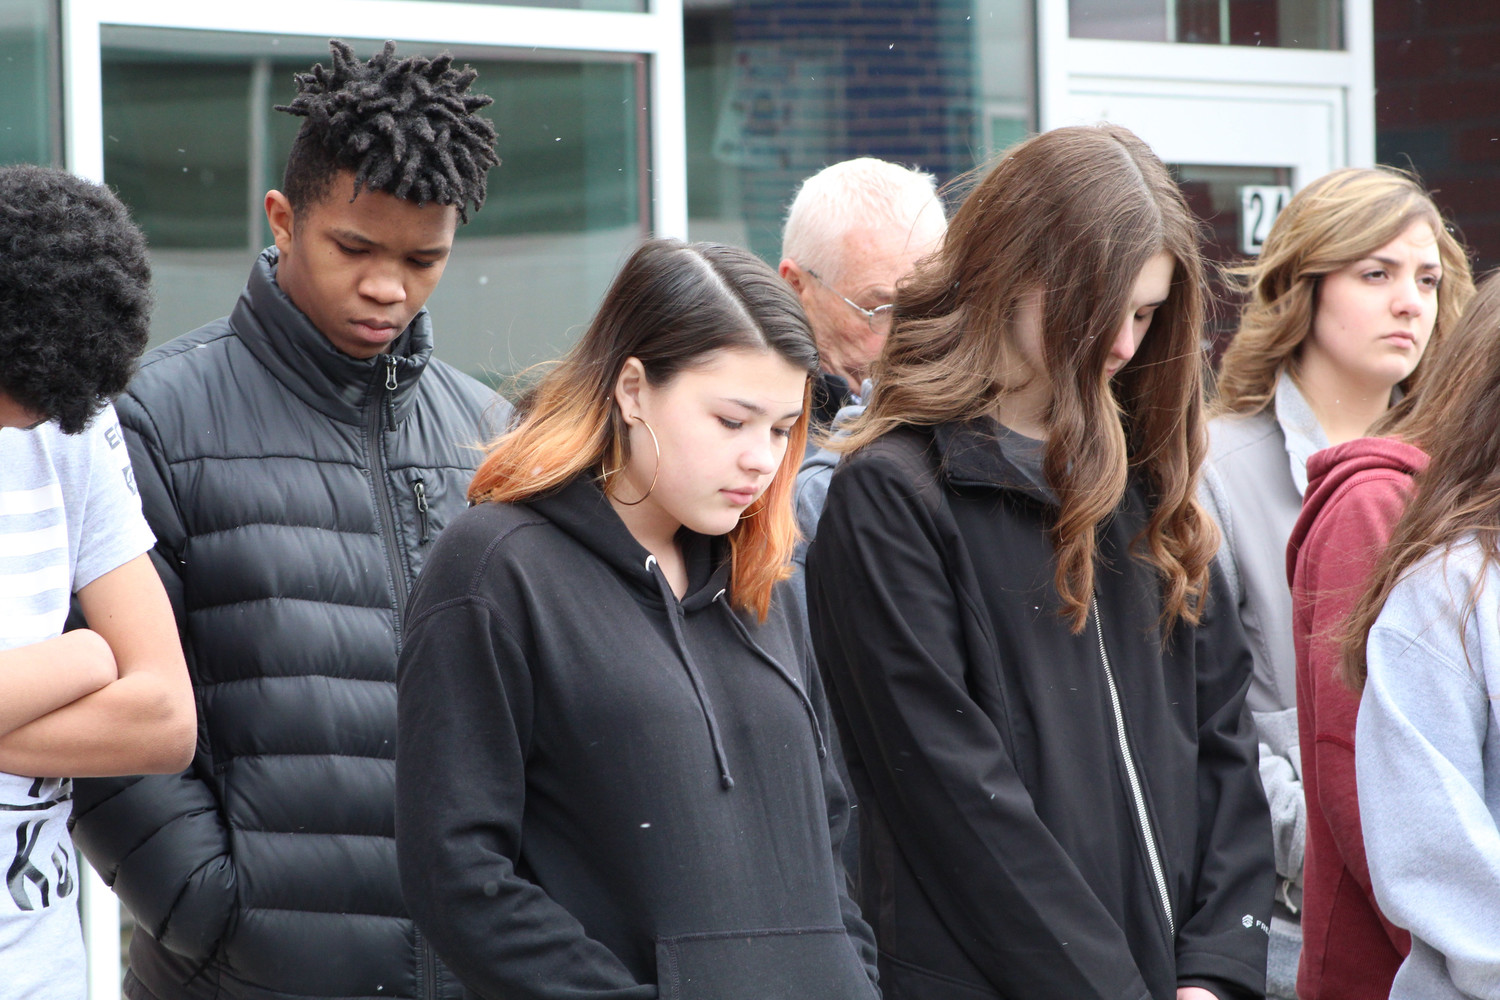 Students including junior Adrianna Martinez stood in silence for 17 minutes.